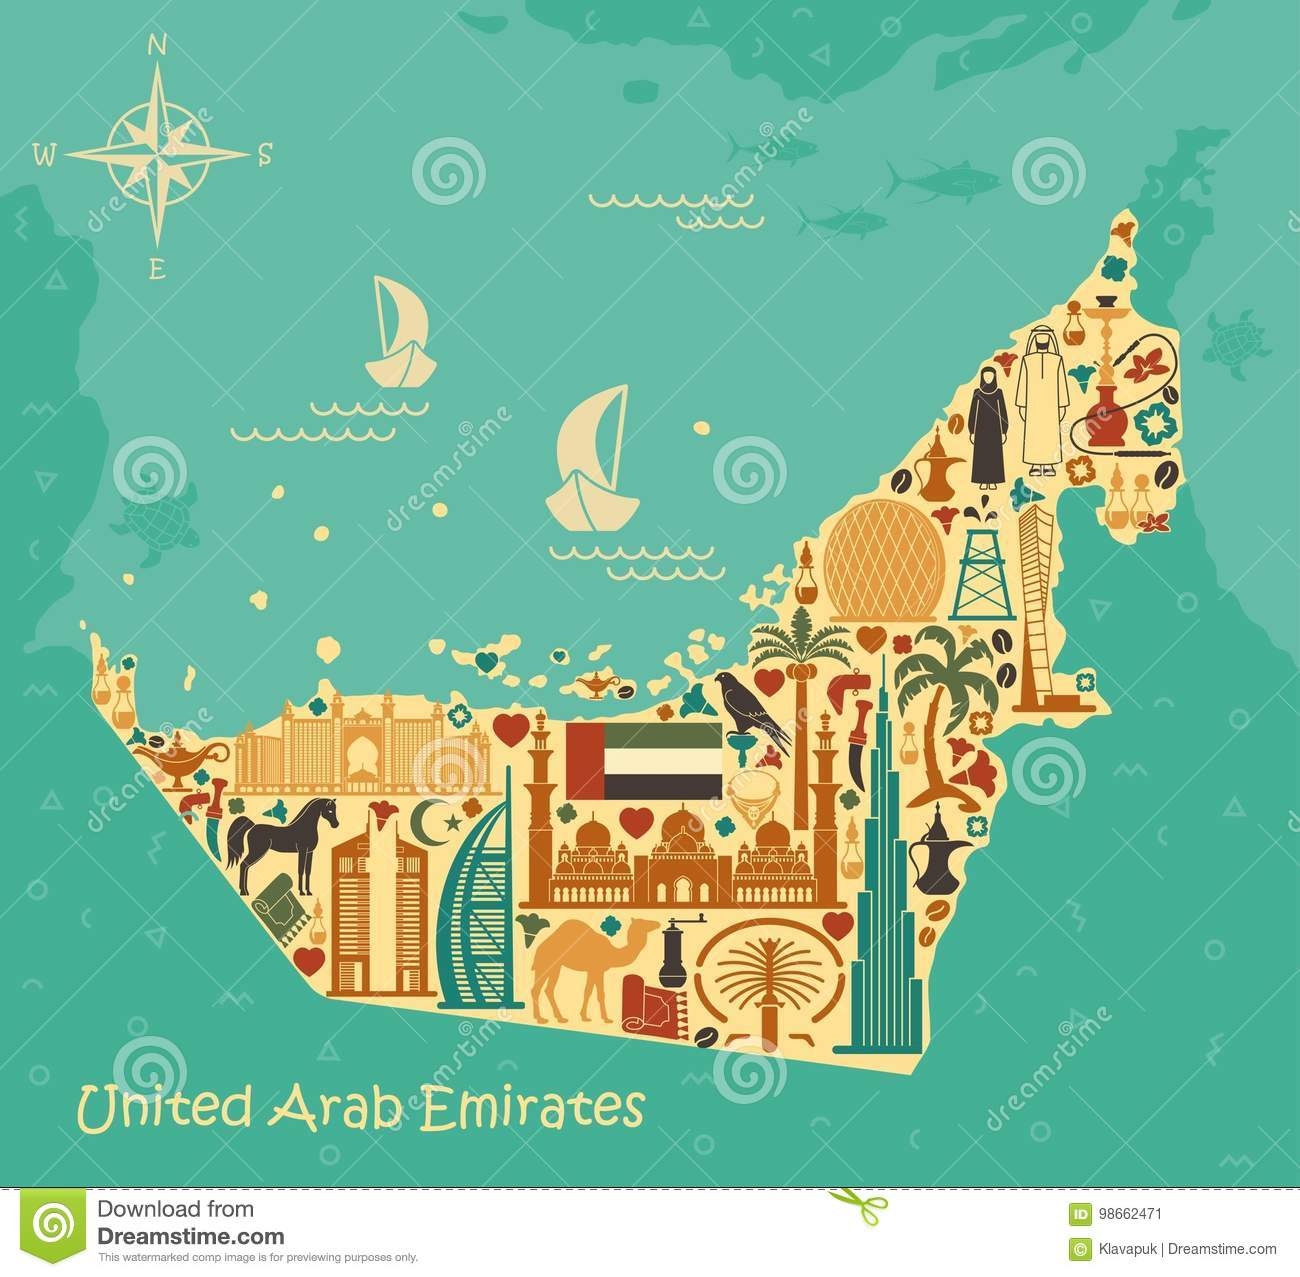 Map Of United Arab Emirates Consisting Of The Traditional Symbols Of